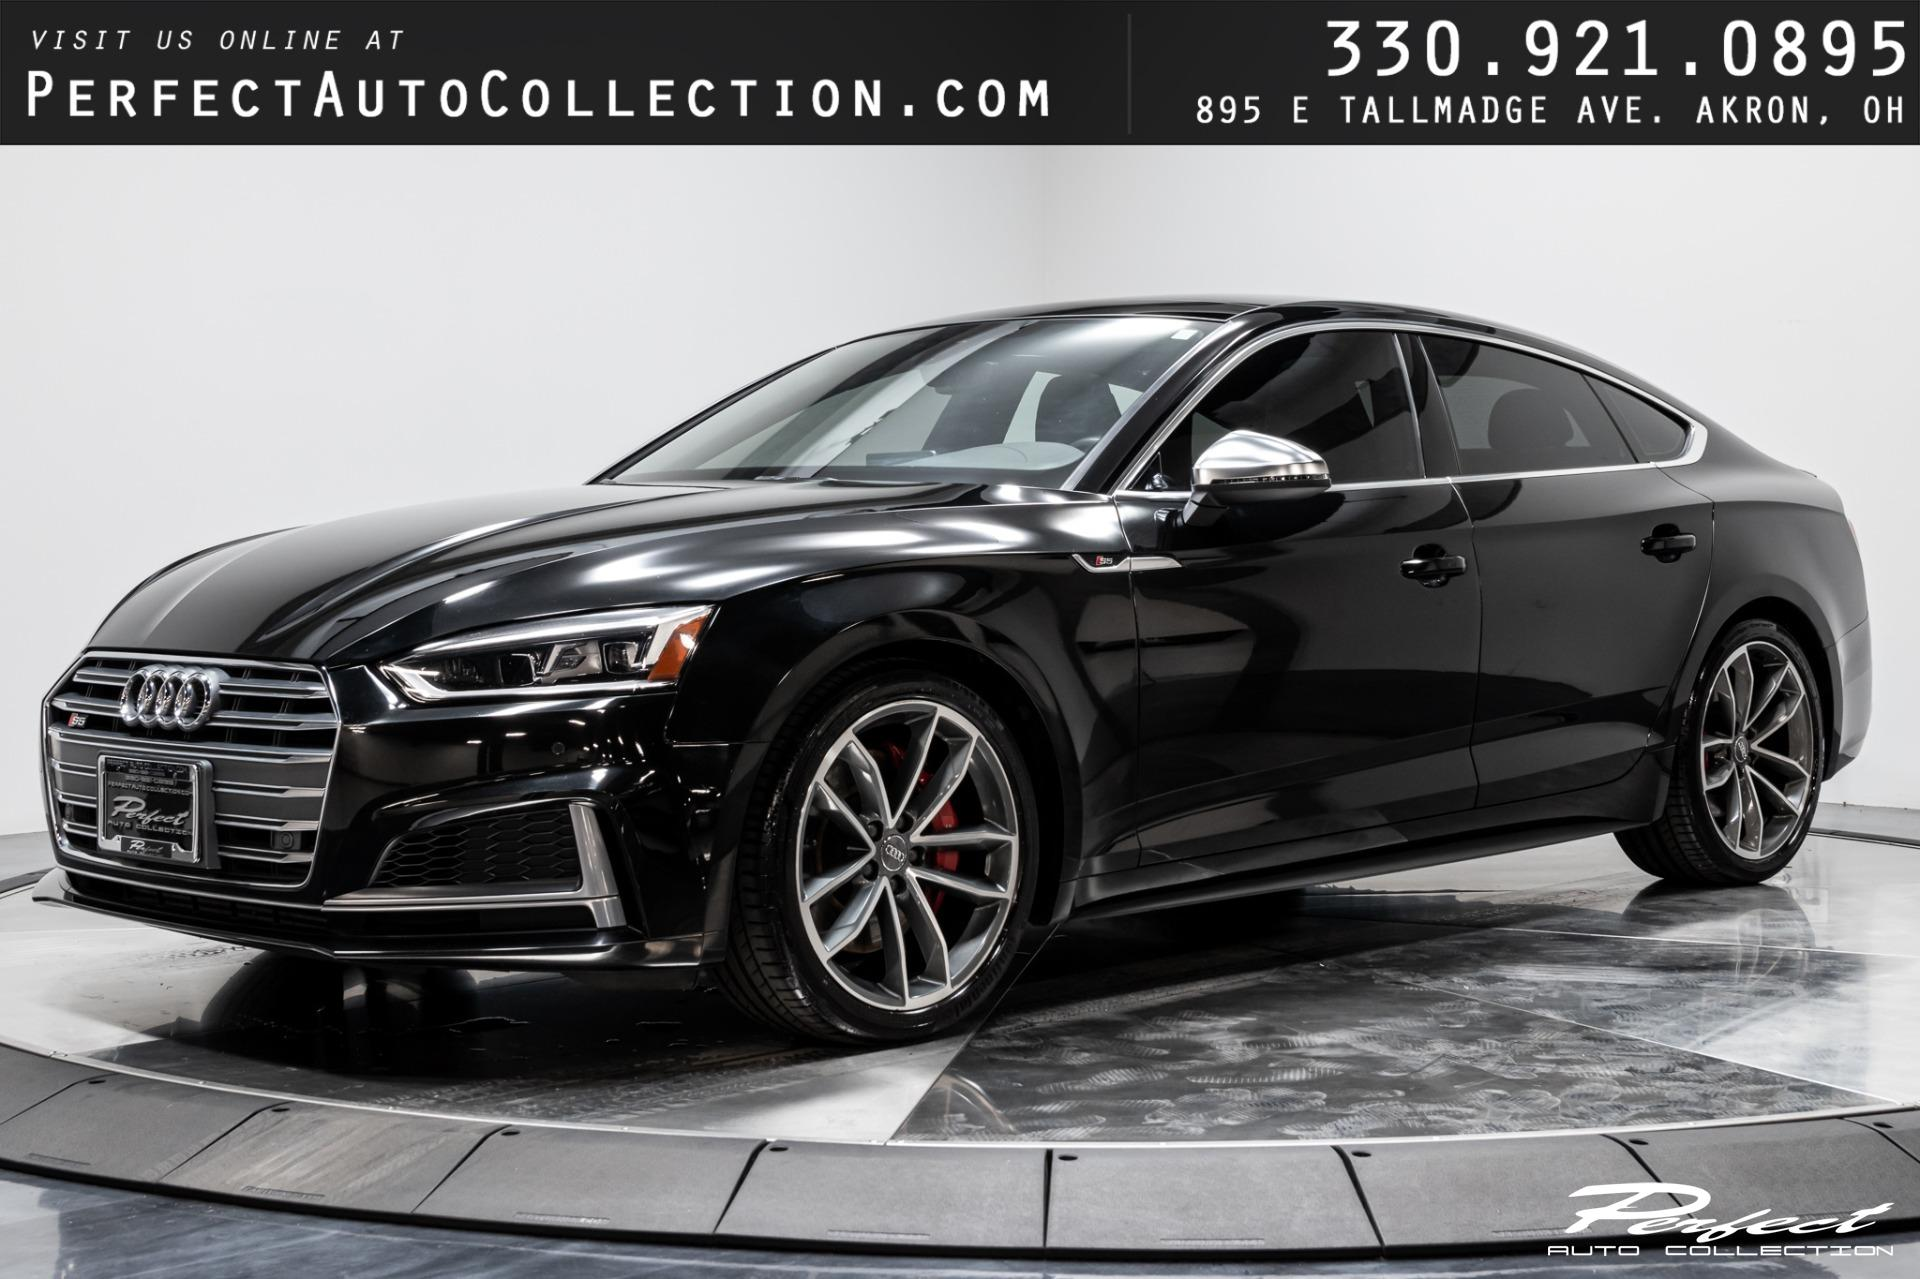 Used 2018 Audi S5 Sportback 3.0T quattro Premium Plus for sale $41,993 at Perfect Auto Collection in Akron OH 44310 1